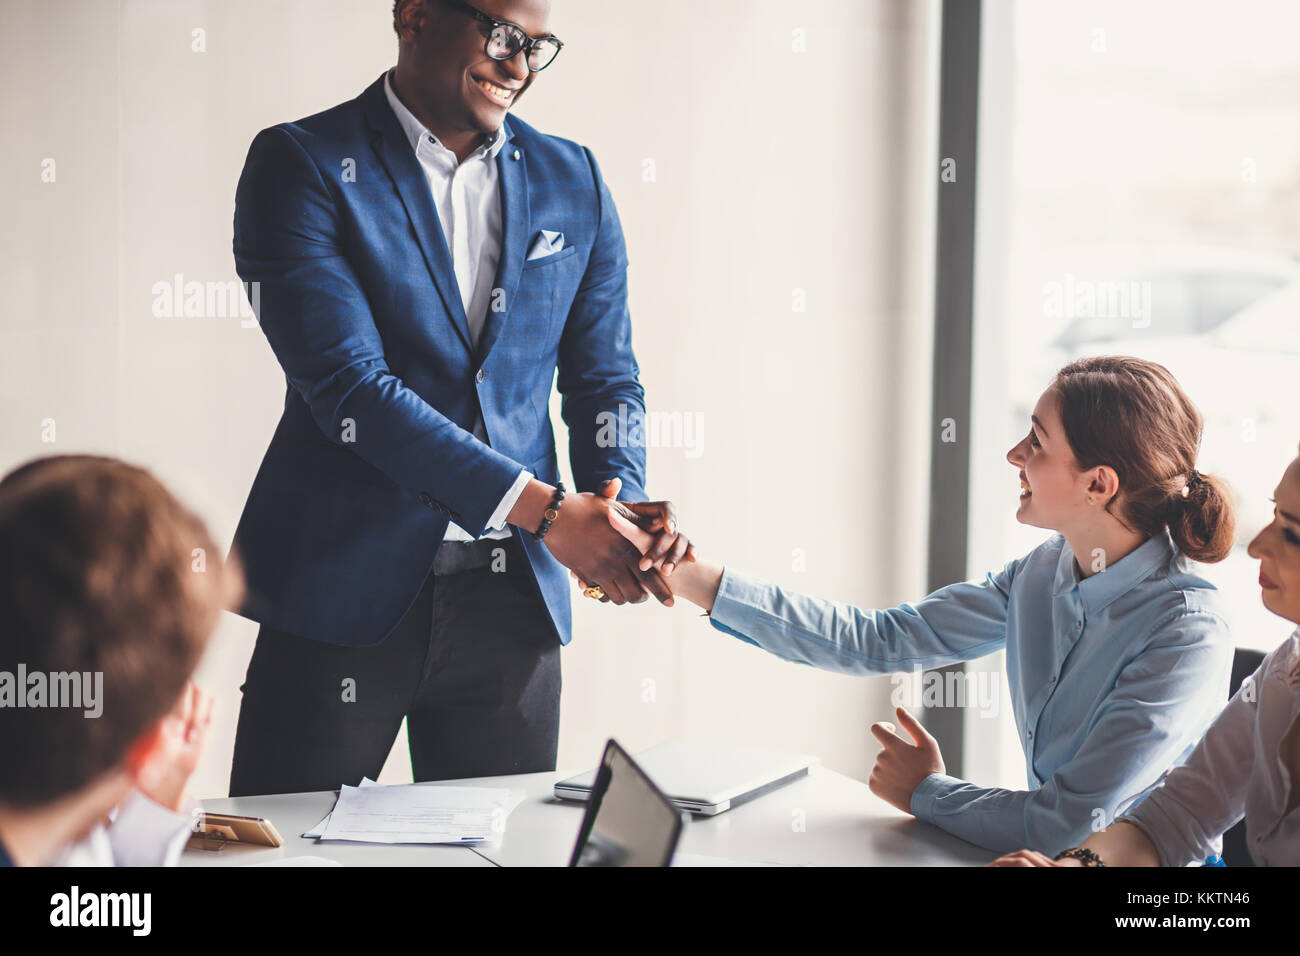 Business People Handshake Greeting Deal Concept - Stock Image